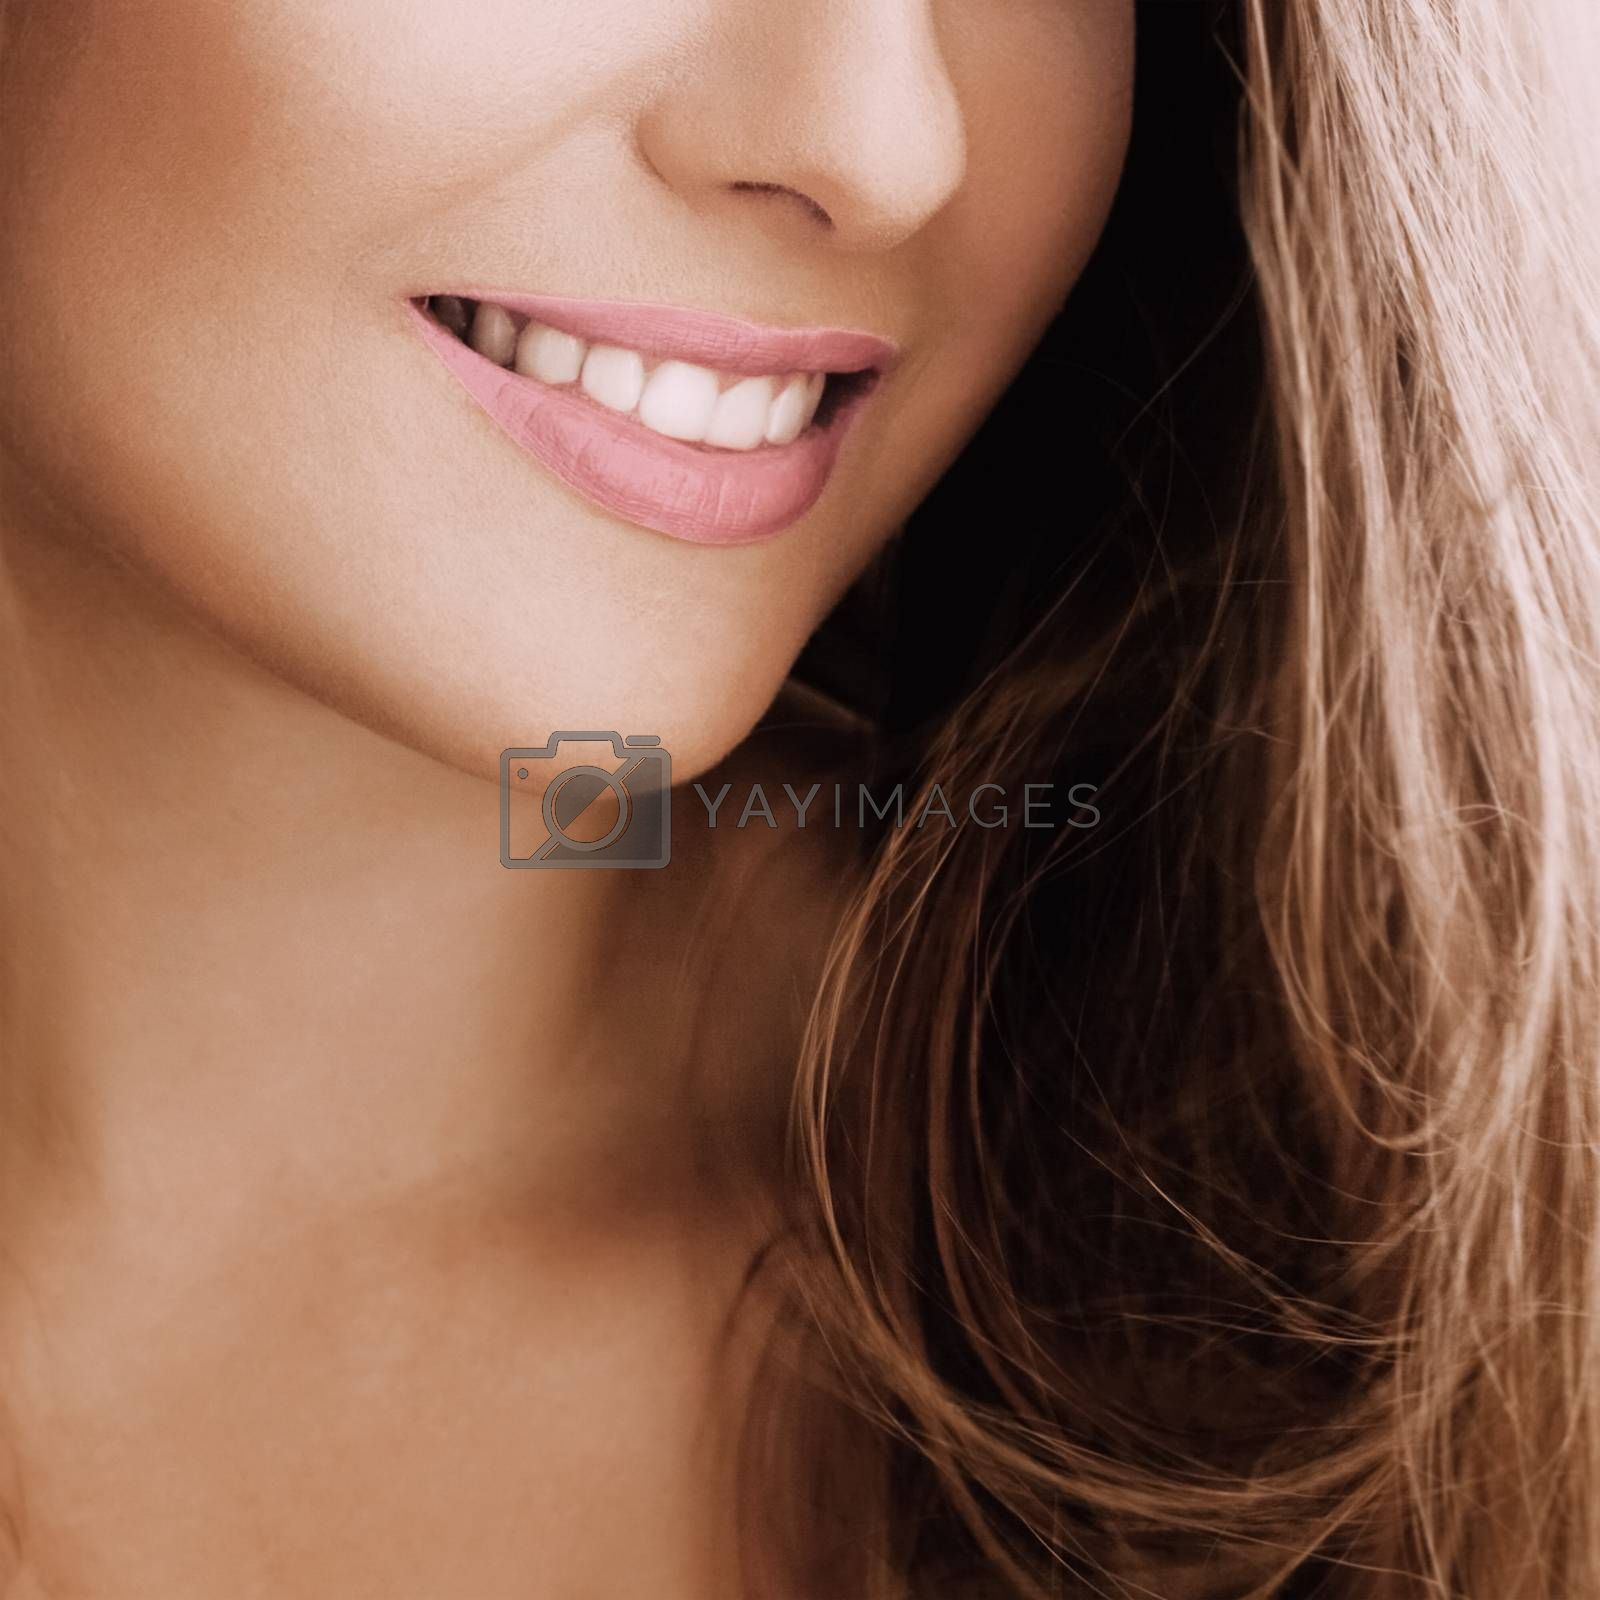 Healthy female smile with perfect natural white teeth, beauty face closeup of smiling young woman, bright lipstick makeup and clean skin for dental and healthcare brands